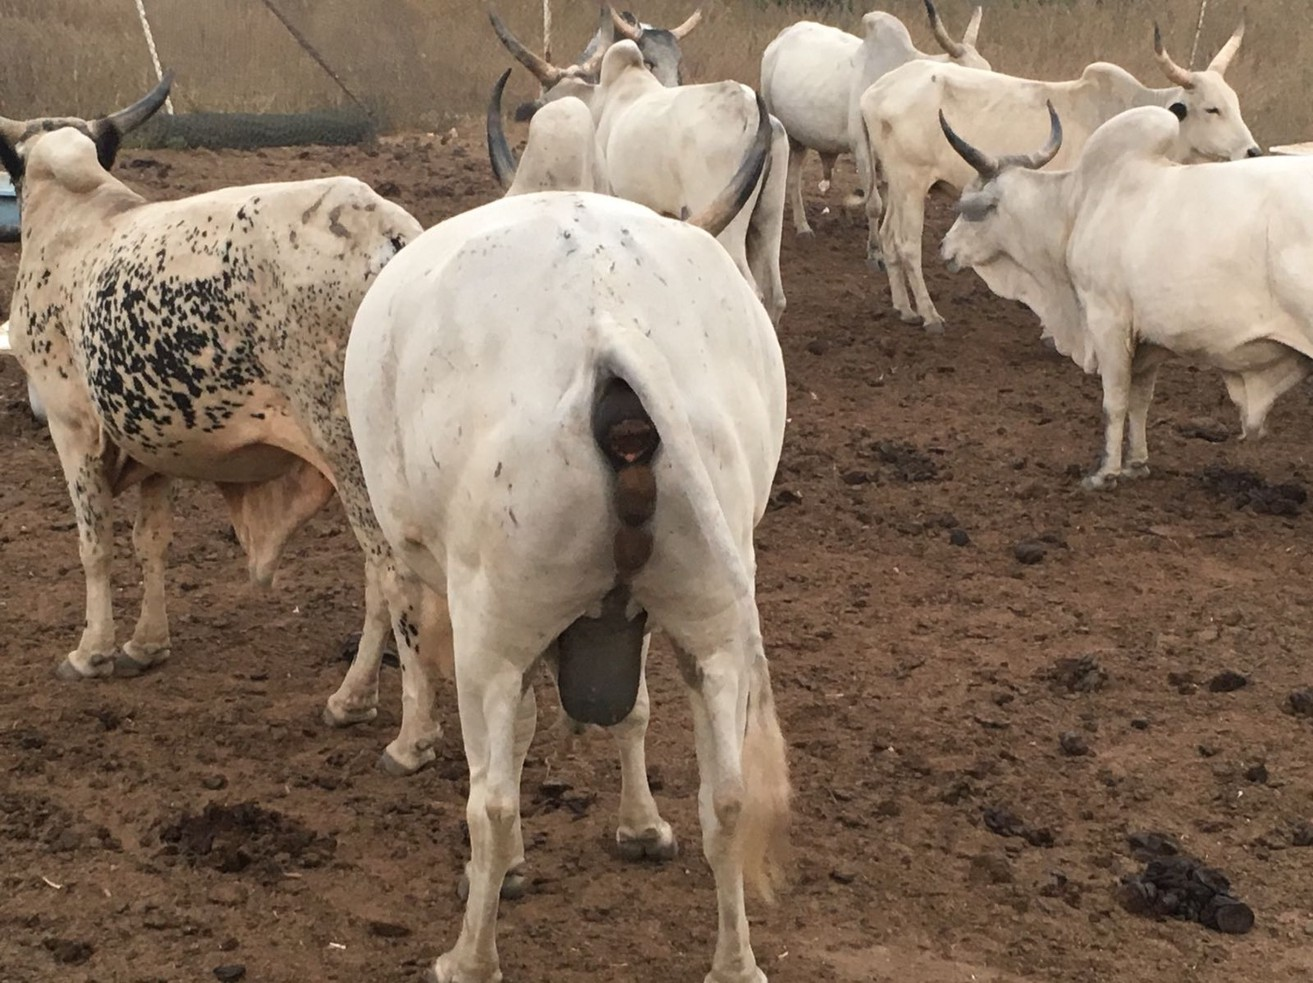 On Ruga, Cattle Herders, Fulanization and Dangers of Hysterical